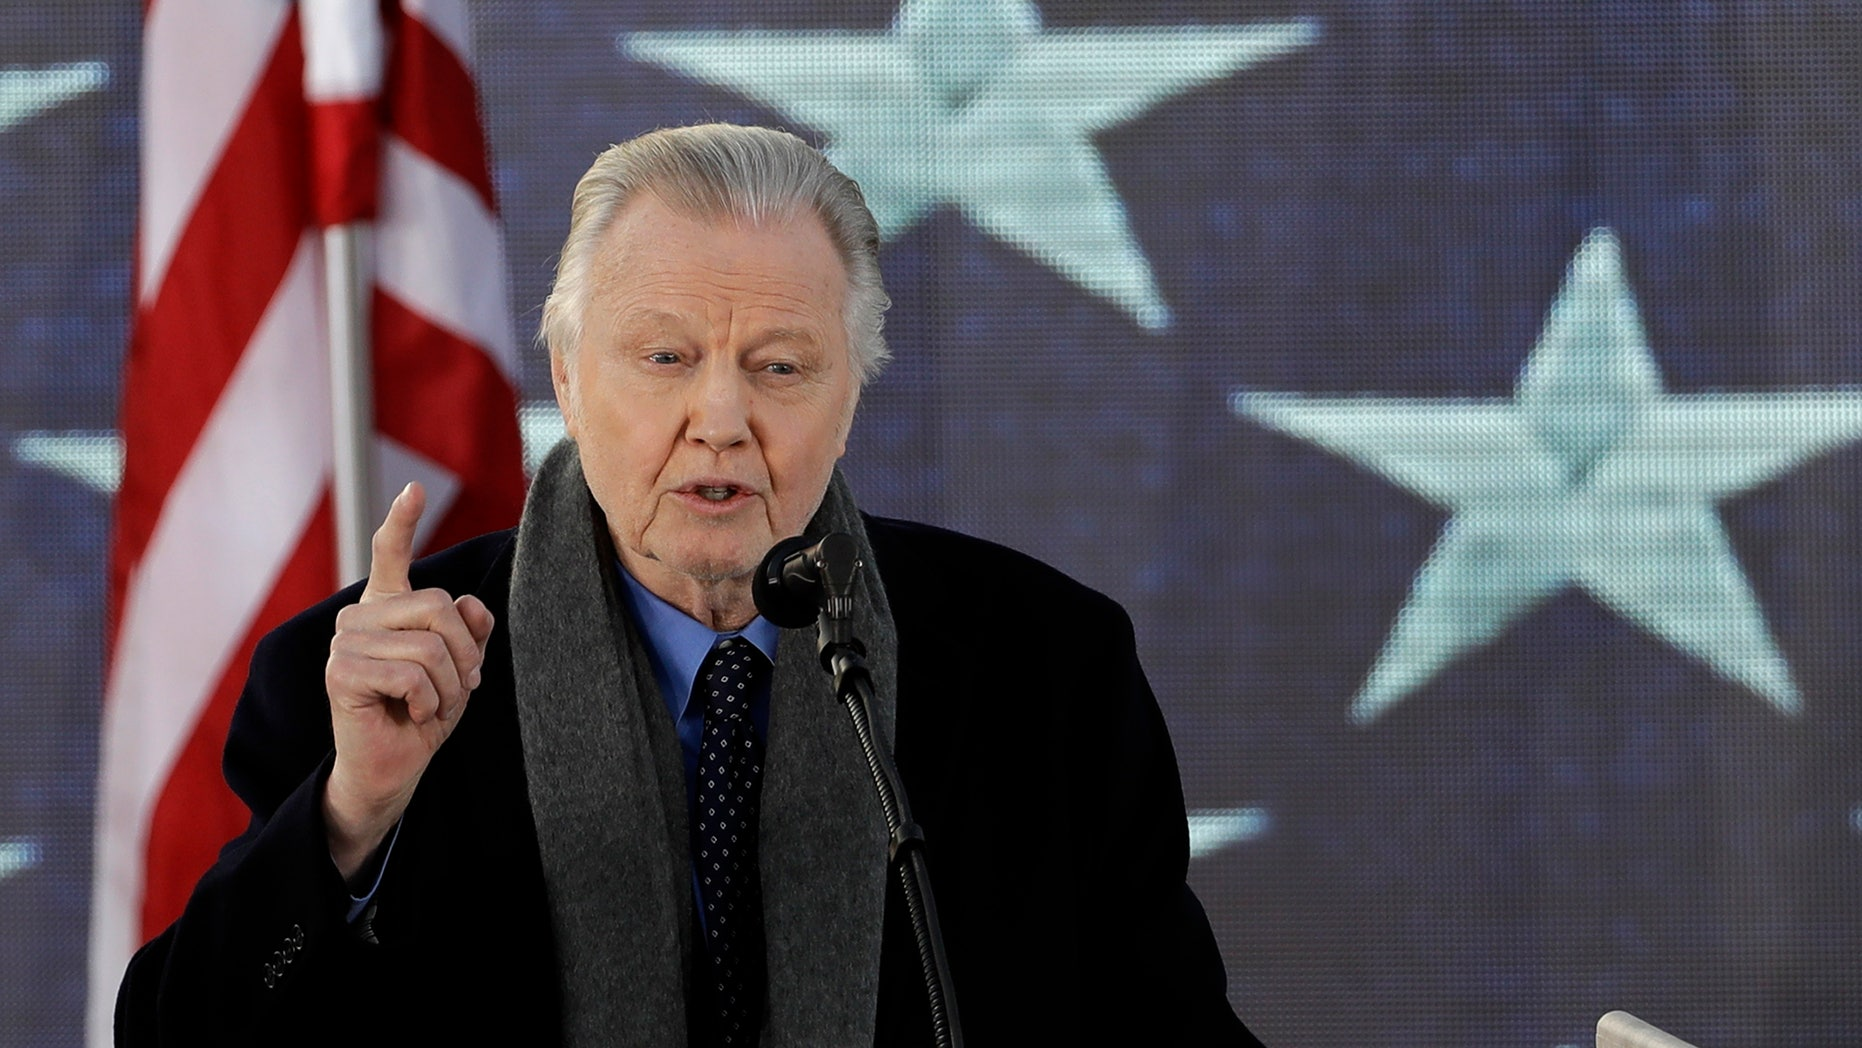 """Actor Jon Voight speaks during a pre-Inaugural """"Make America Great Again! Welcome Celebration"""" at the Lincoln Memorial in Washington, Thursday, Jan. 19, 2017."""